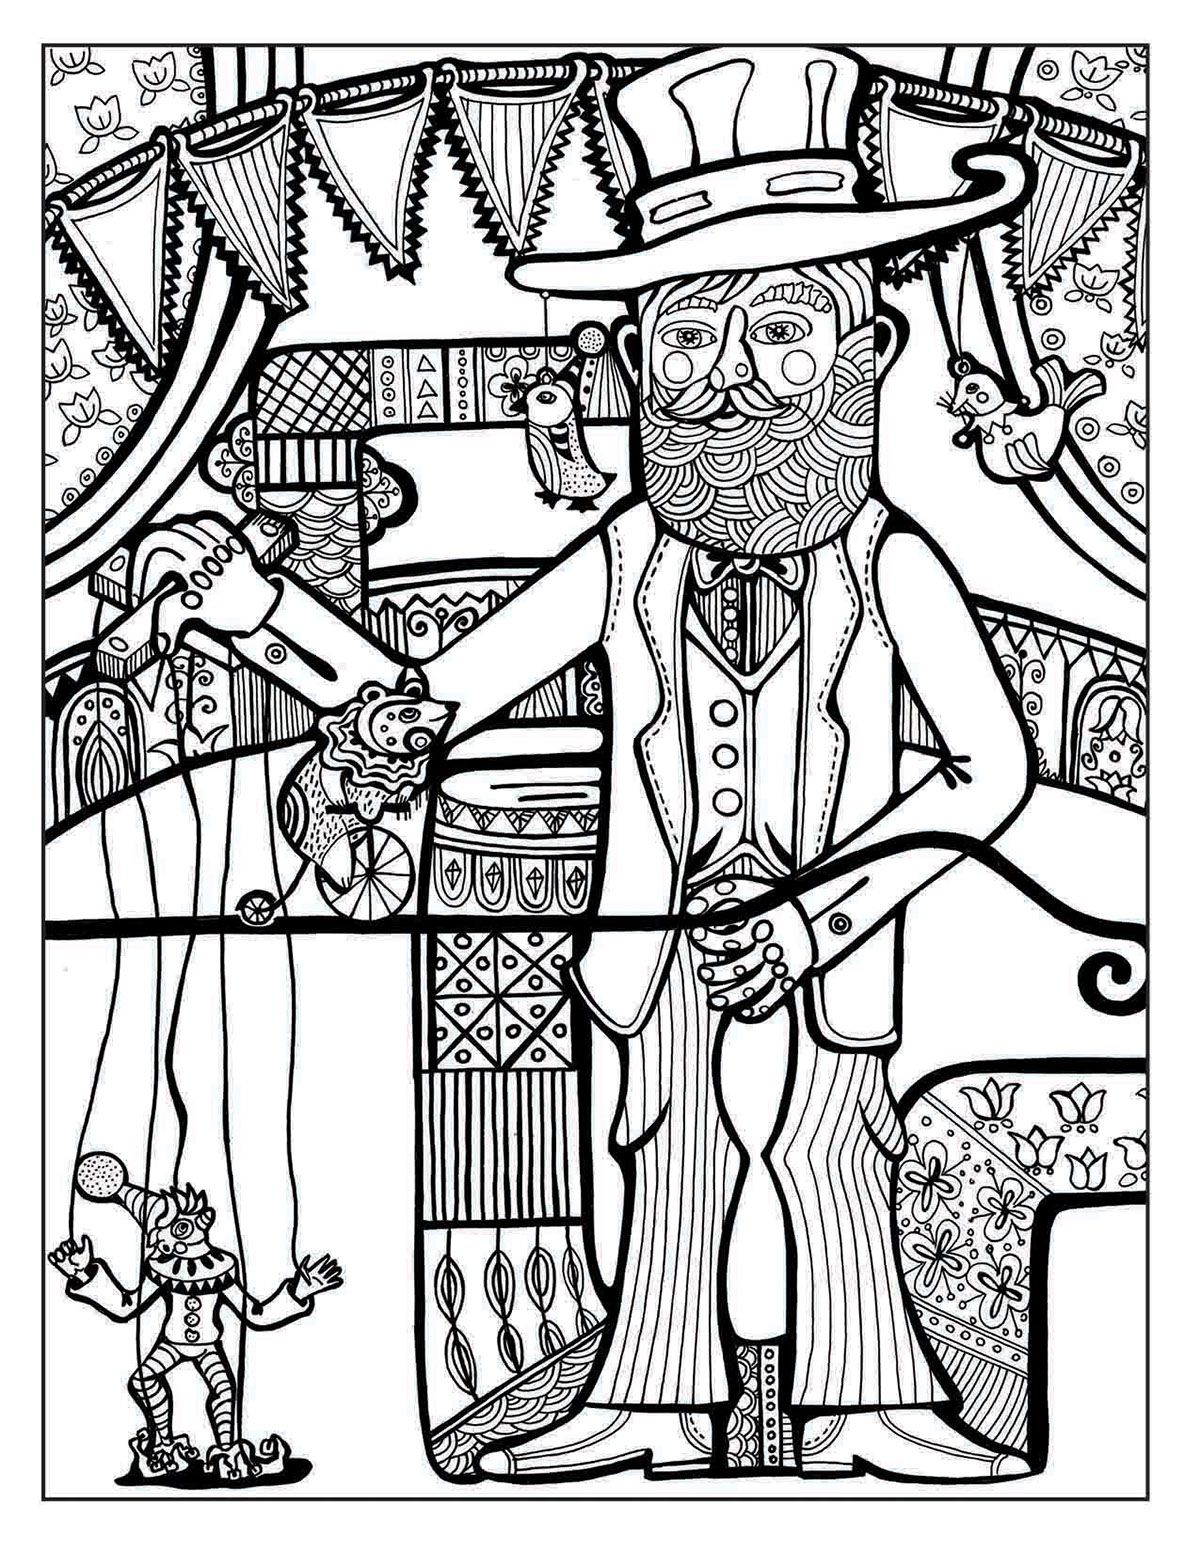 A Day at the Circus coloring page on Behance | Coloring ...